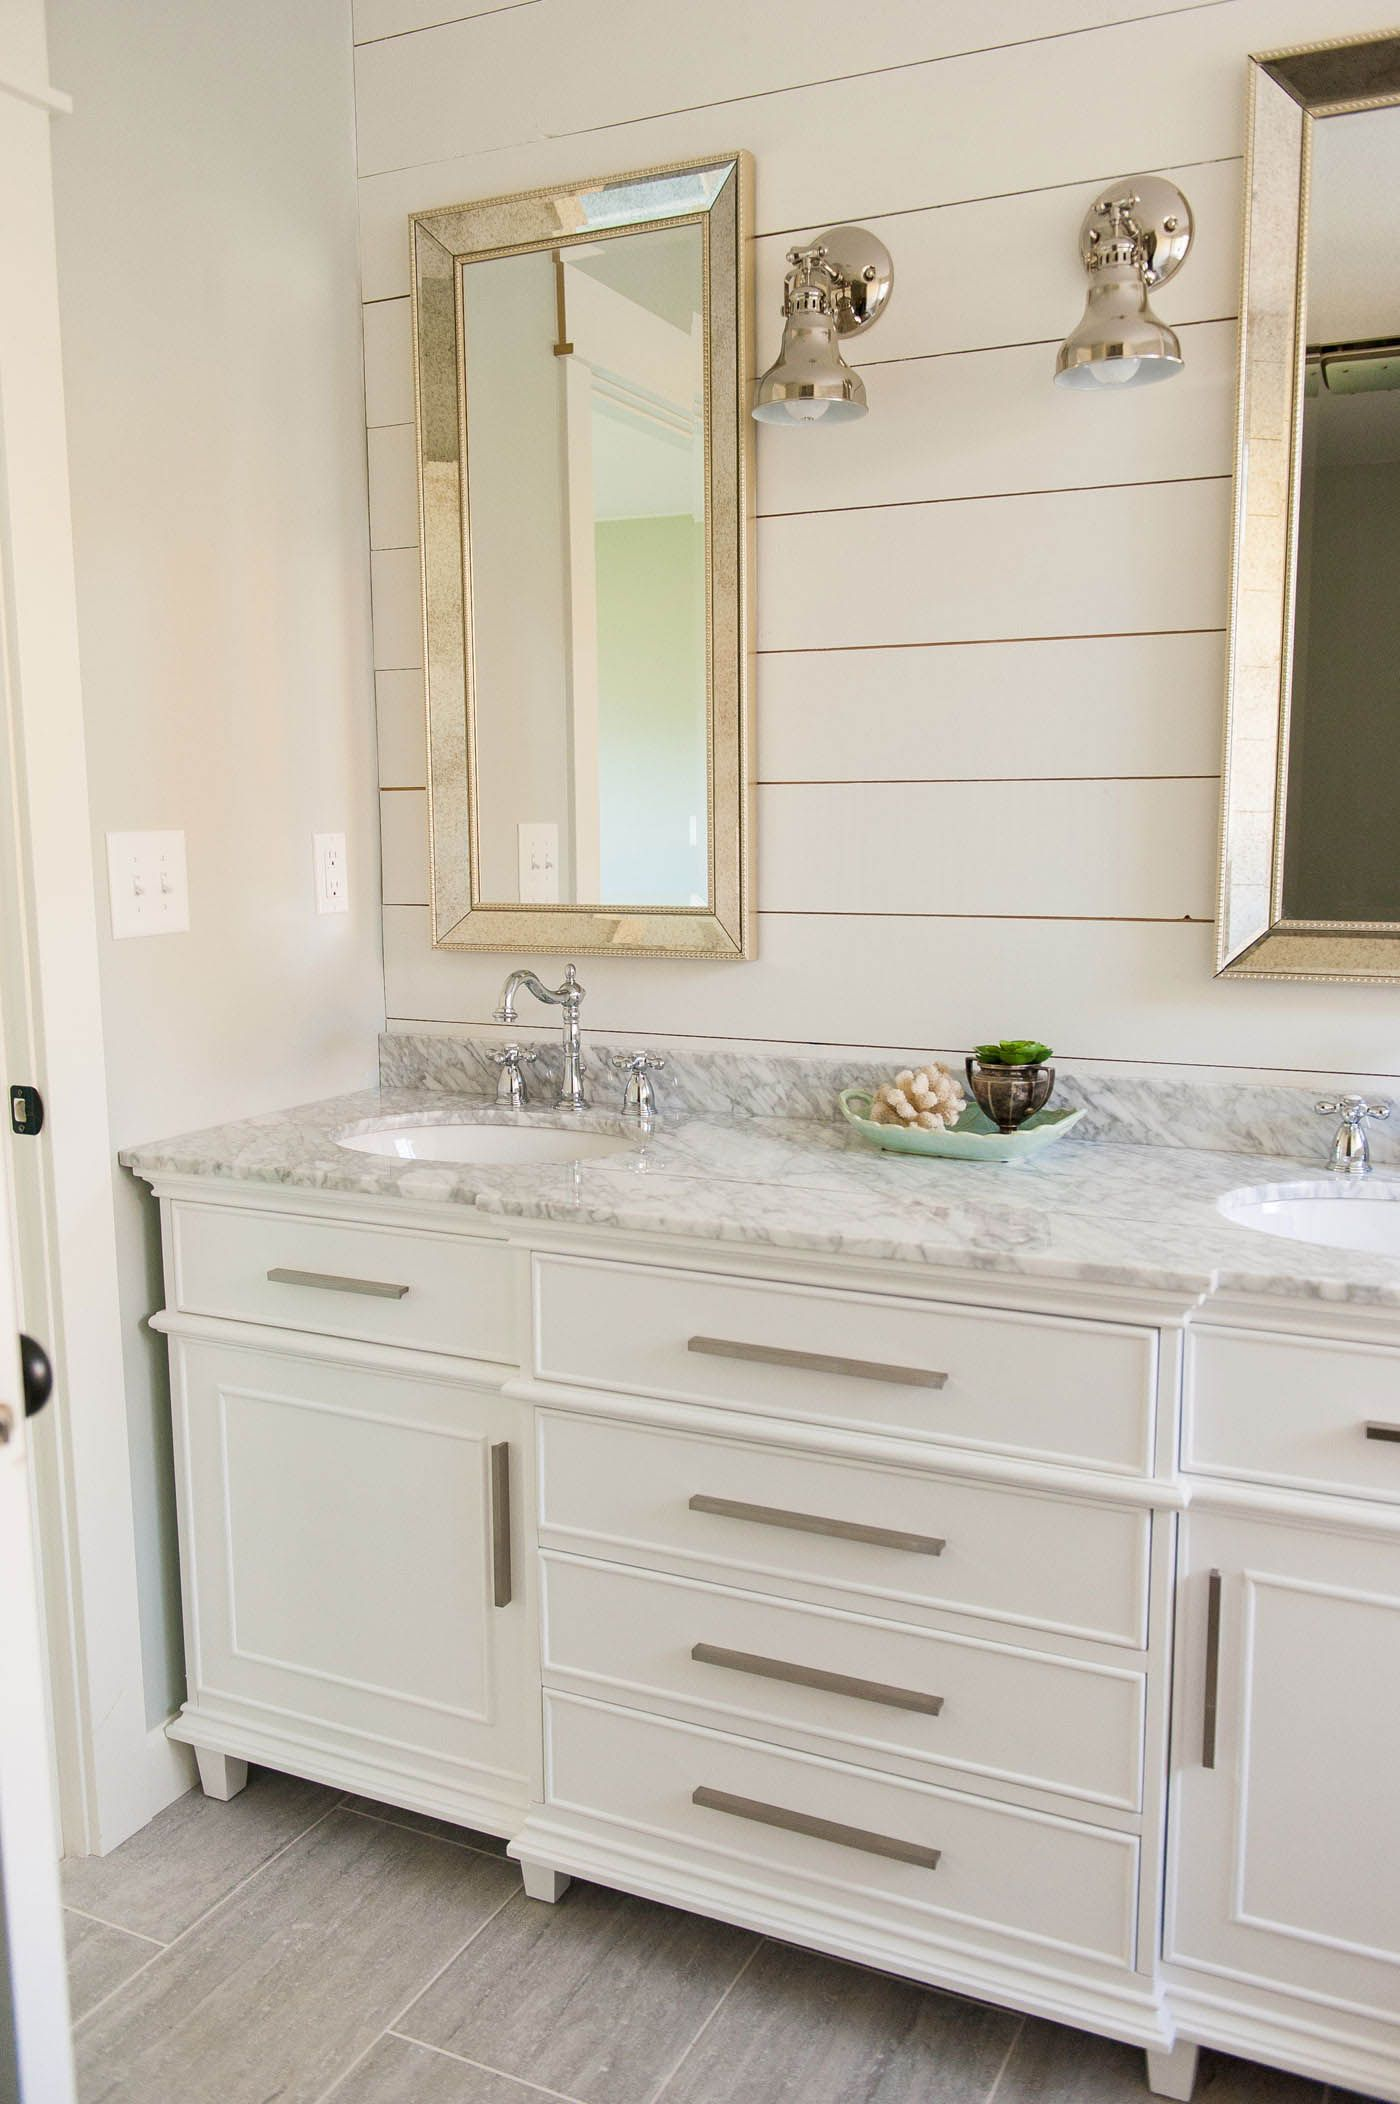 The Ultimate Guide To Buying A Bathroom Vanity With Images Double Vanity Bathroom Bathrooms Remodel Half Bathroom Remodel